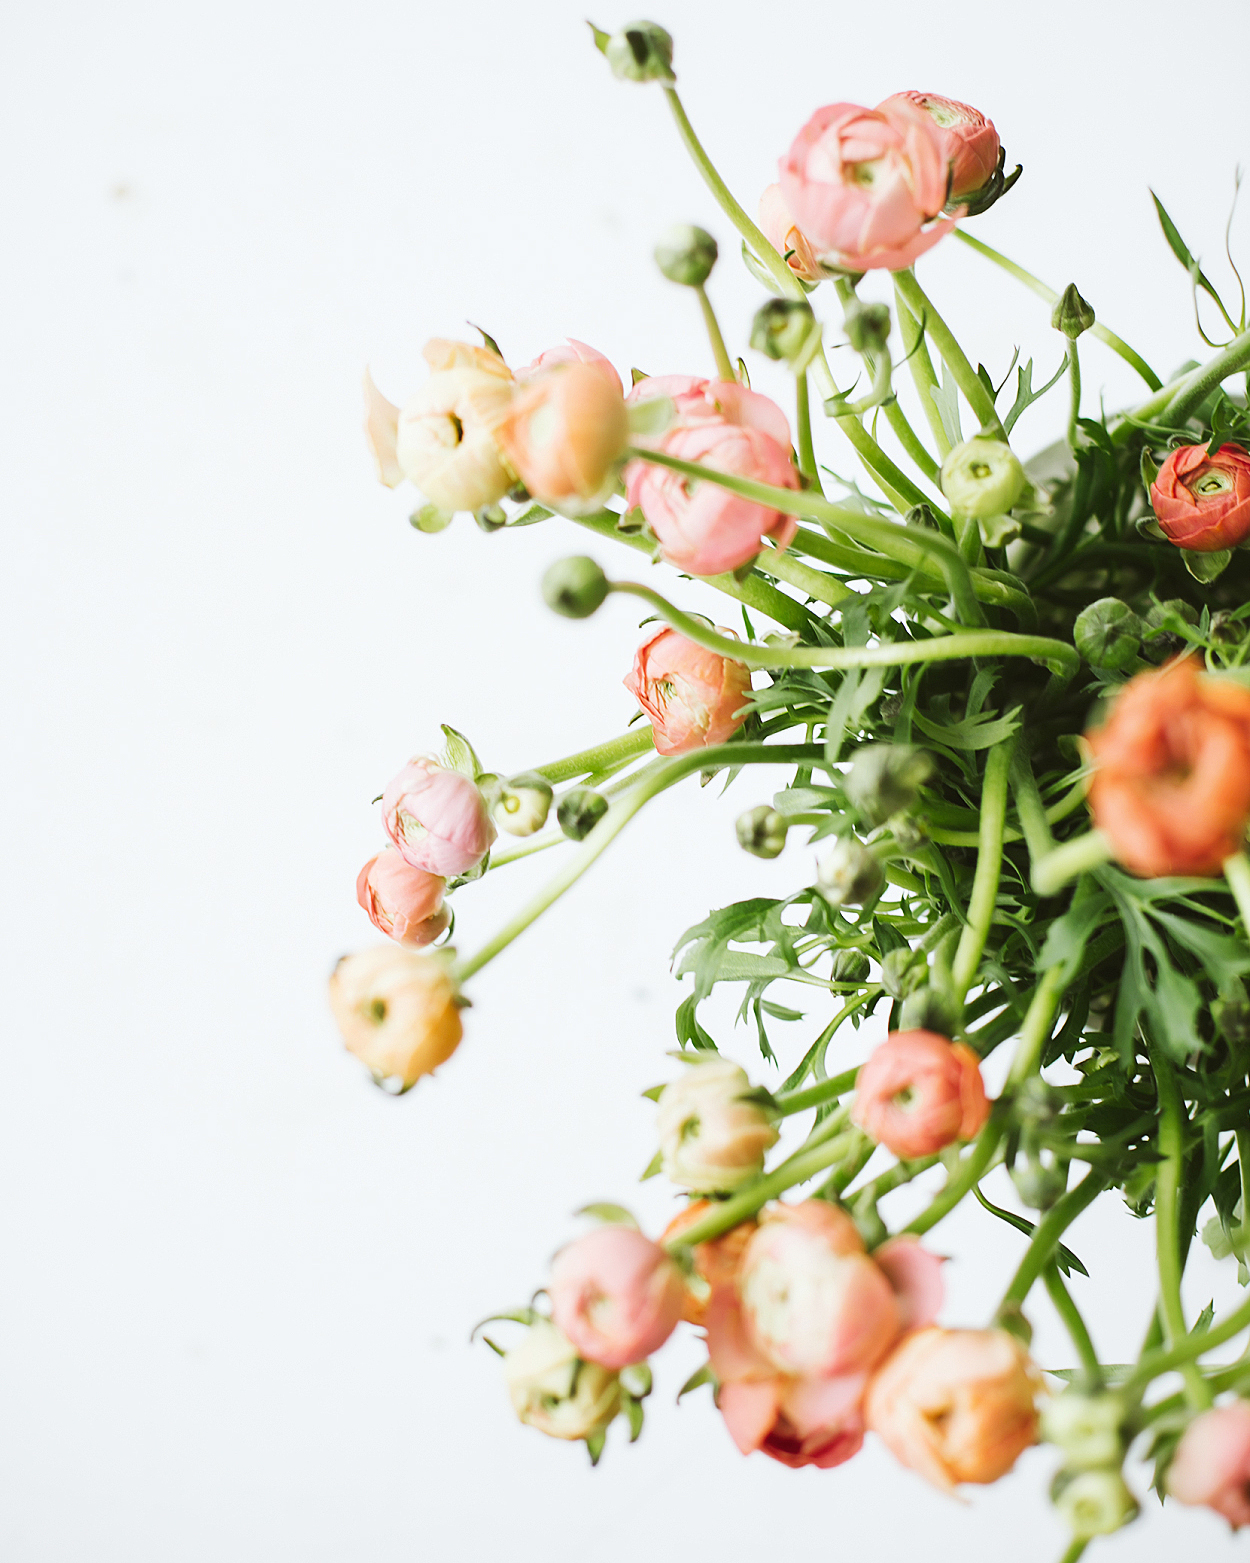 romantic-wedding-flowers-ranunculus-0516.jpg